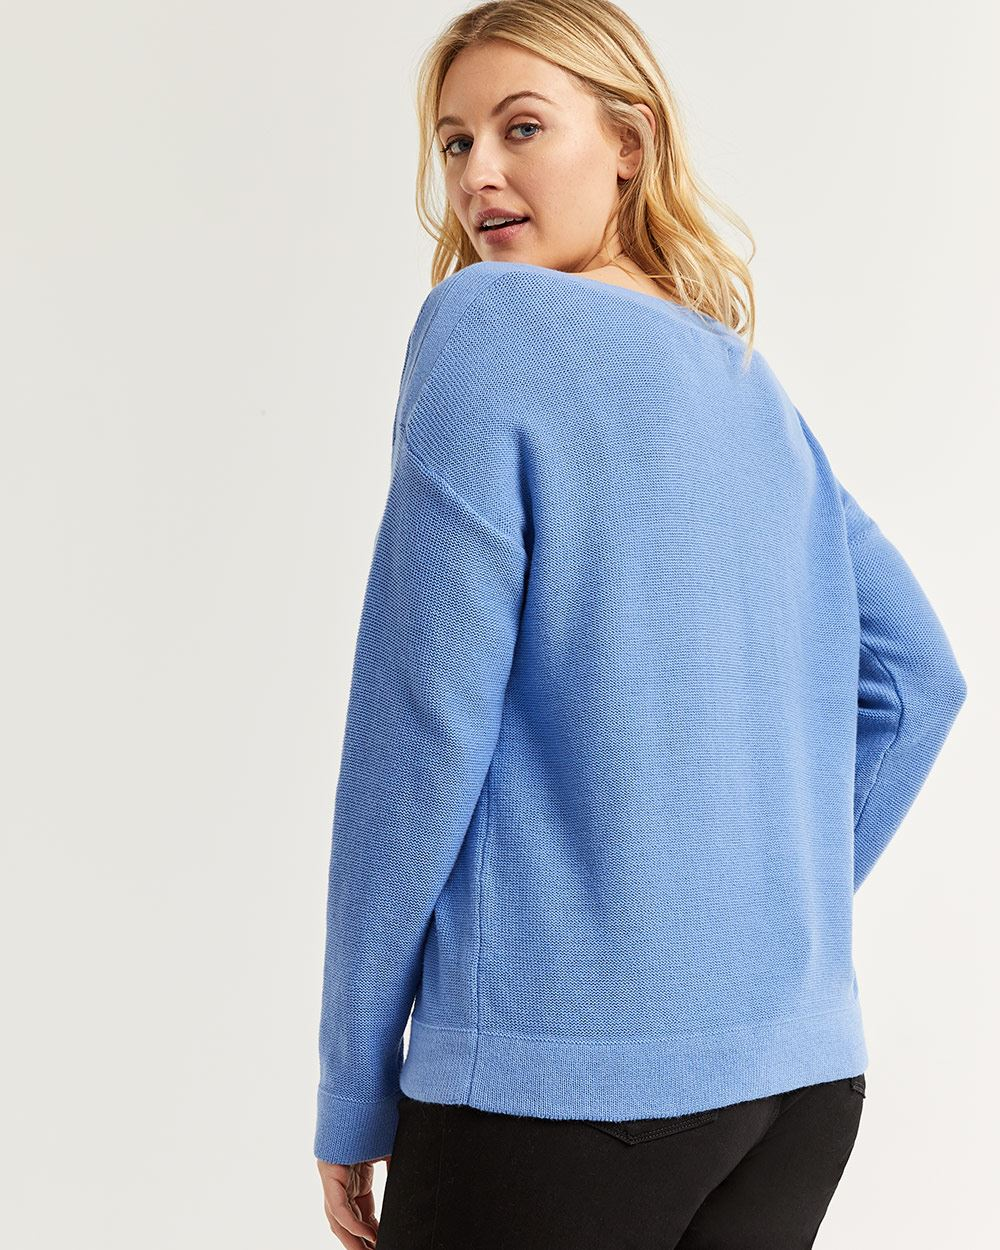 Cotton Sweater with Boat Neck